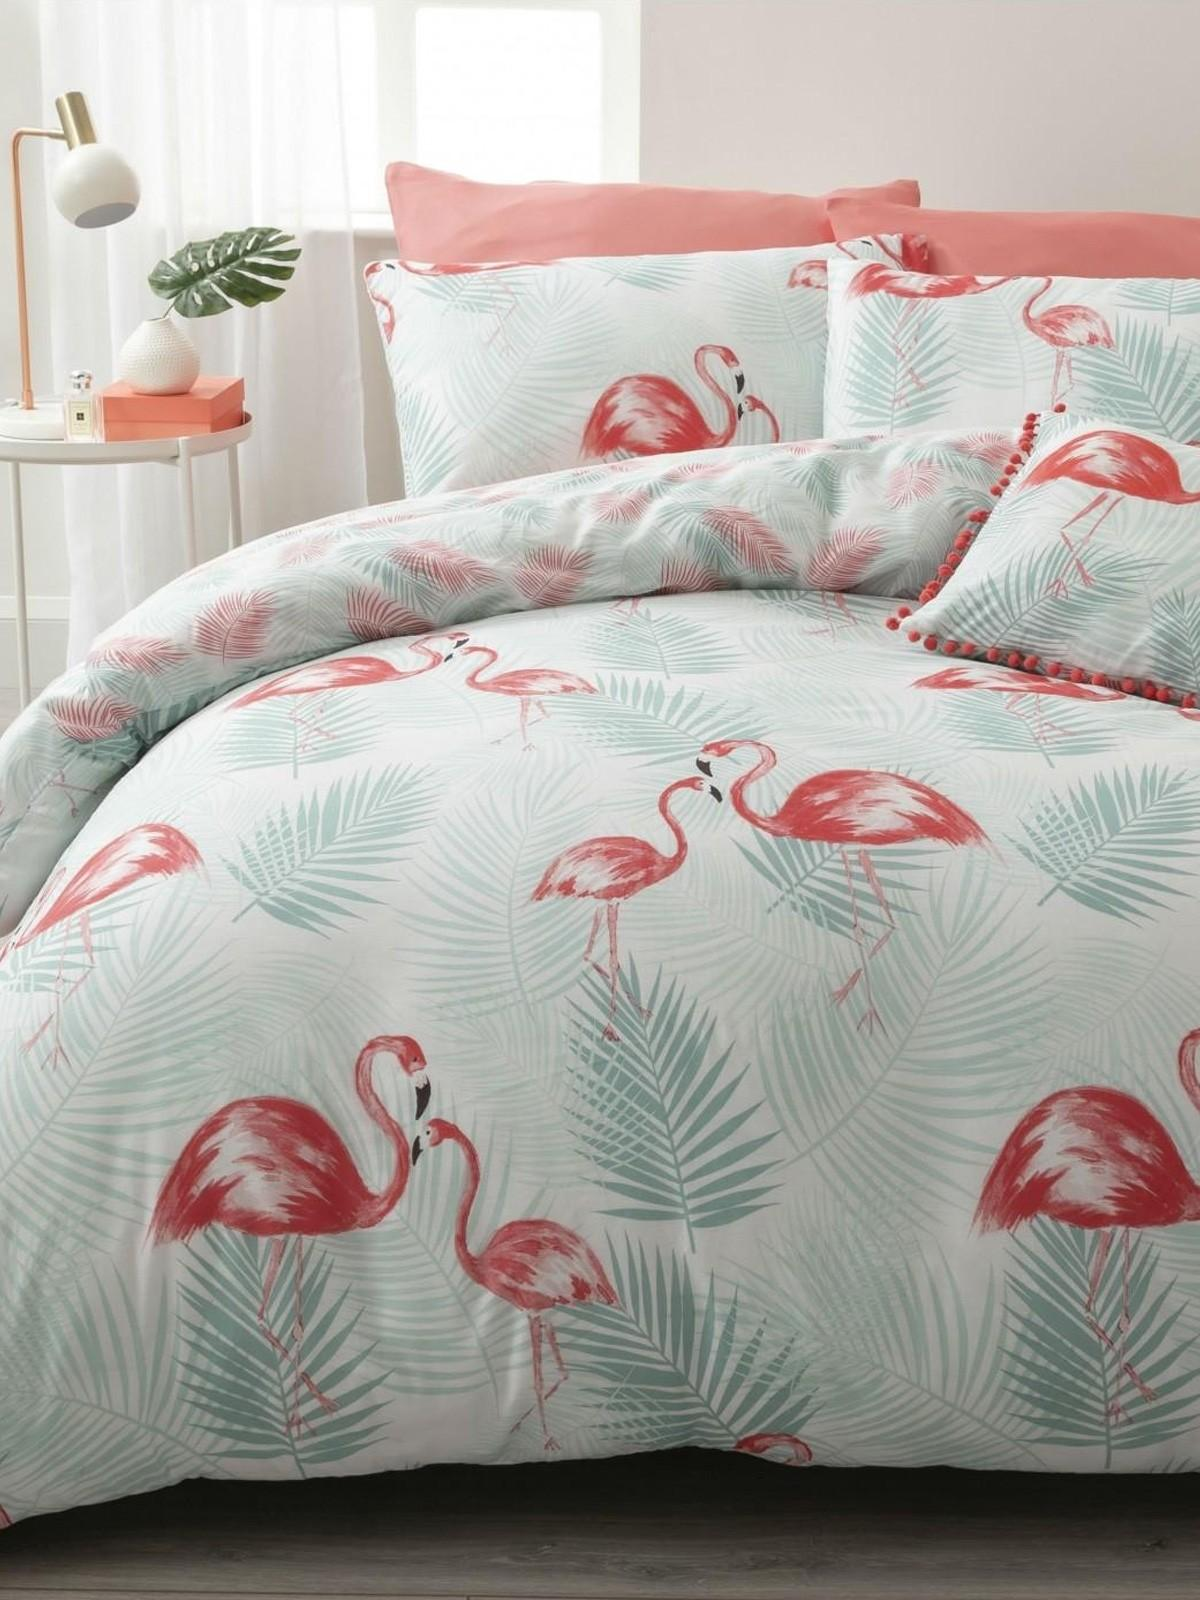 Tropical Flamingo Duvet Set Multi Ponden Home